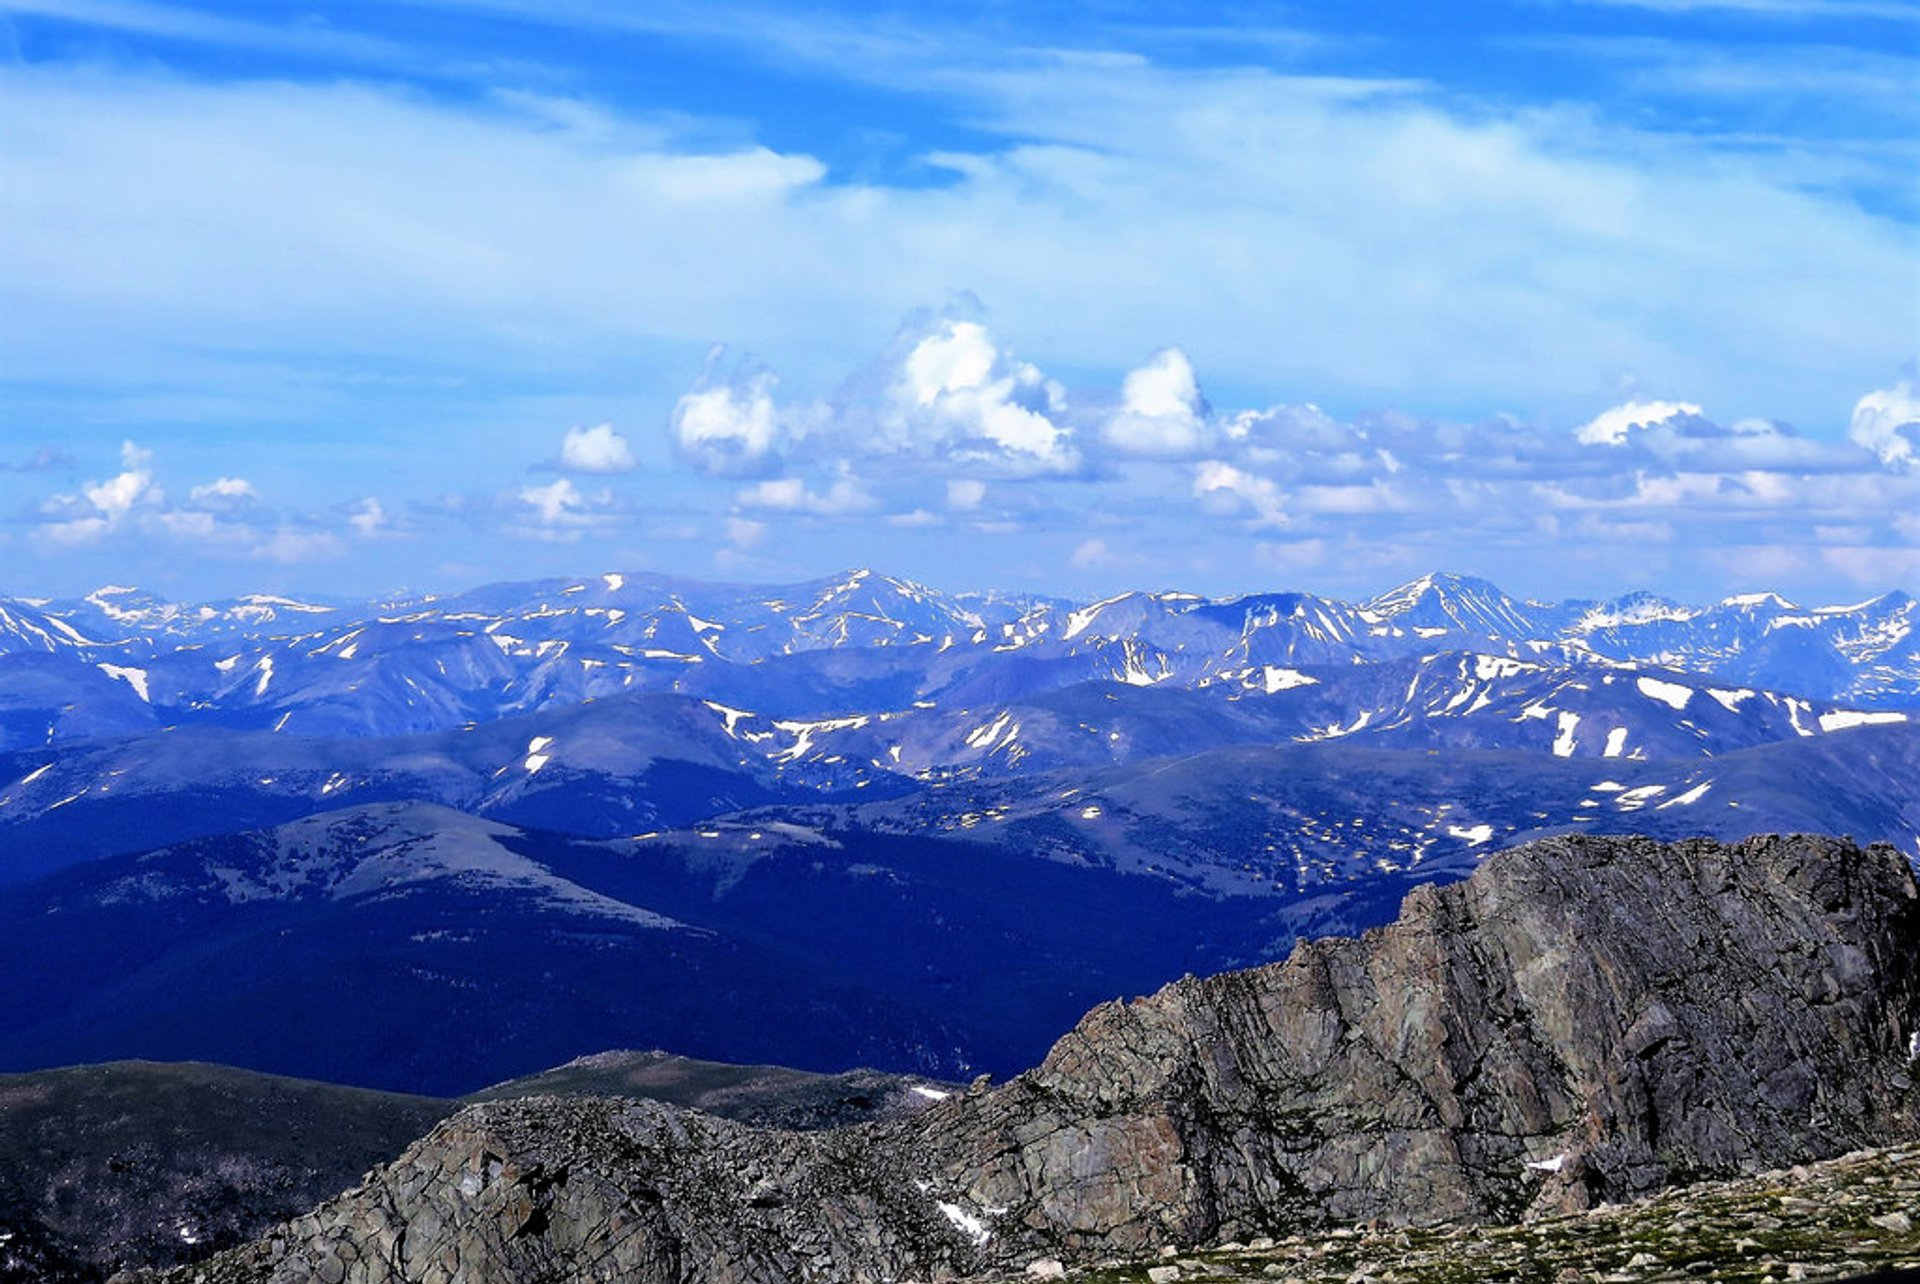 Mount Evans Scenic Byway in Colorado 2019 - Best Time